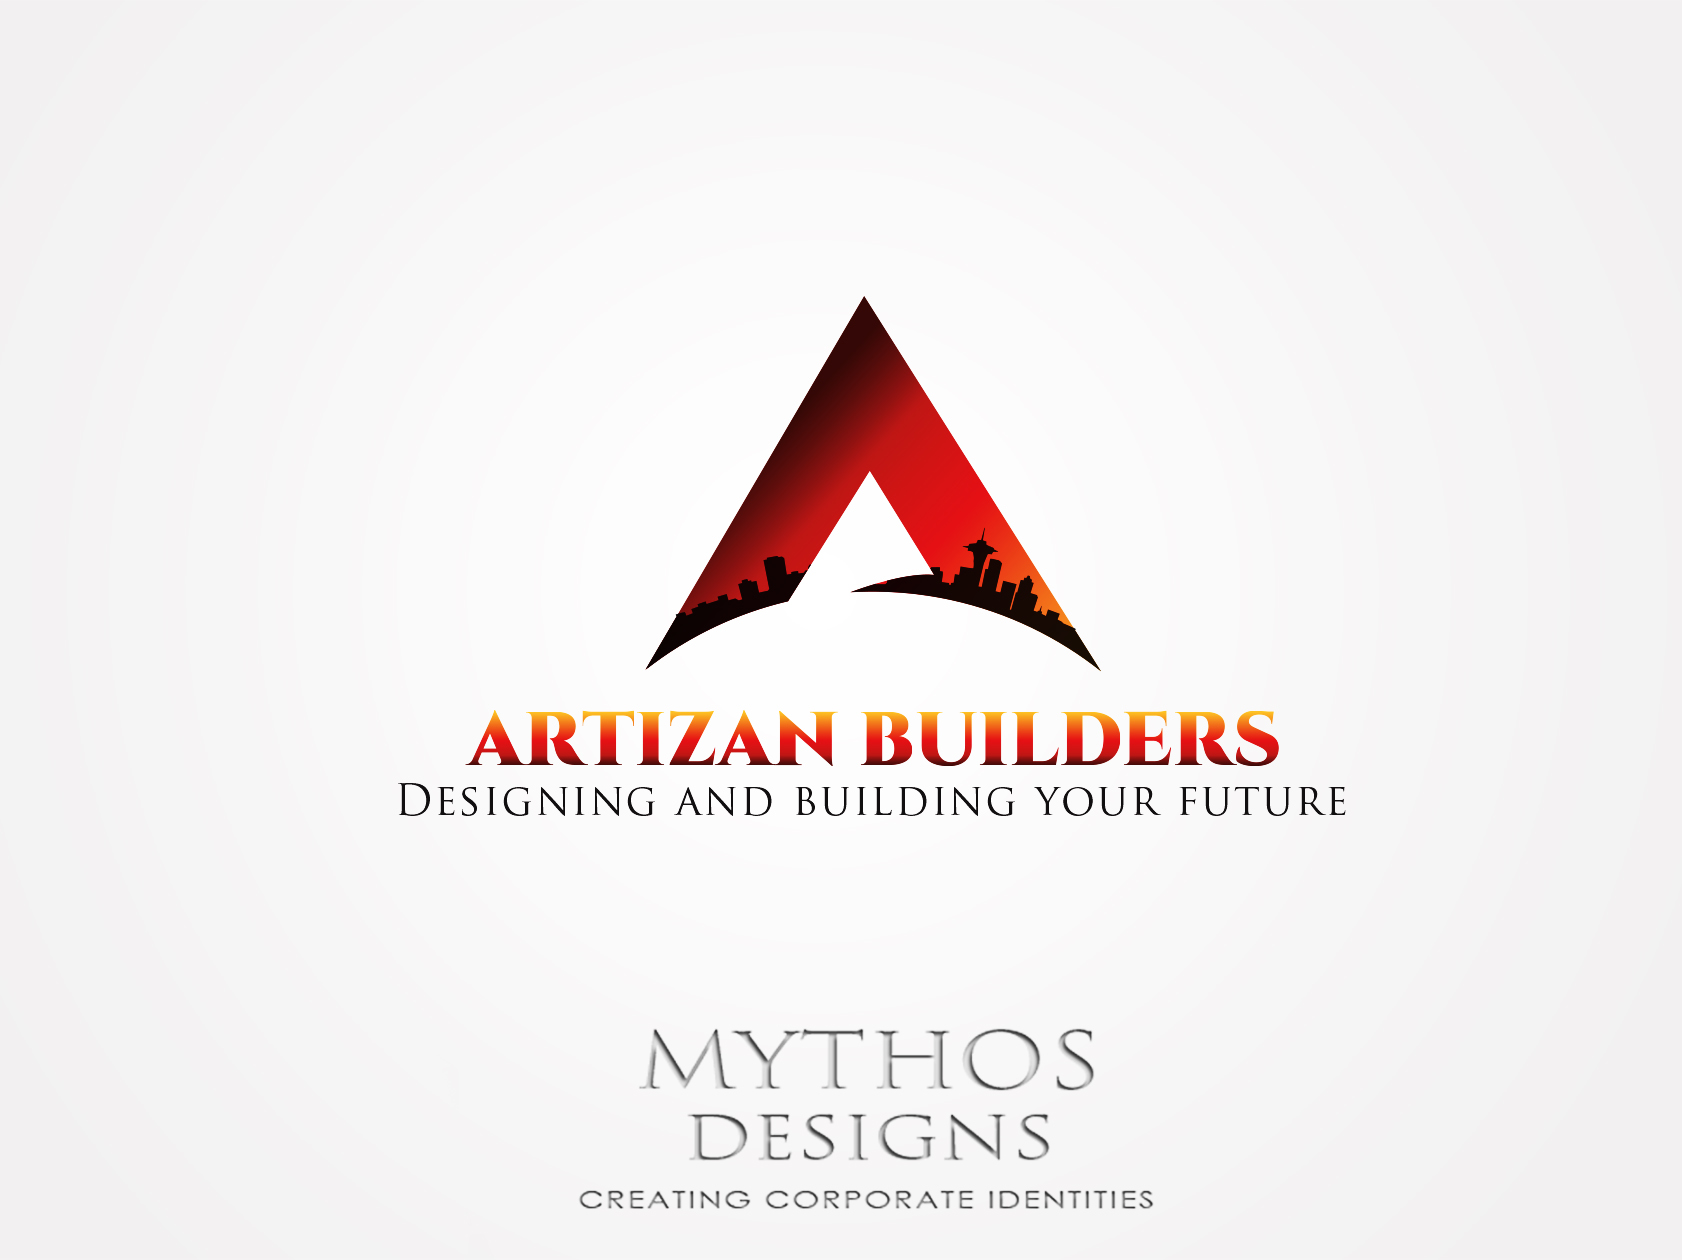 Logo Design by Mythos Designs - Entry No. 180 in the Logo Design Contest Captivating Logo Design for Artisan Builders.